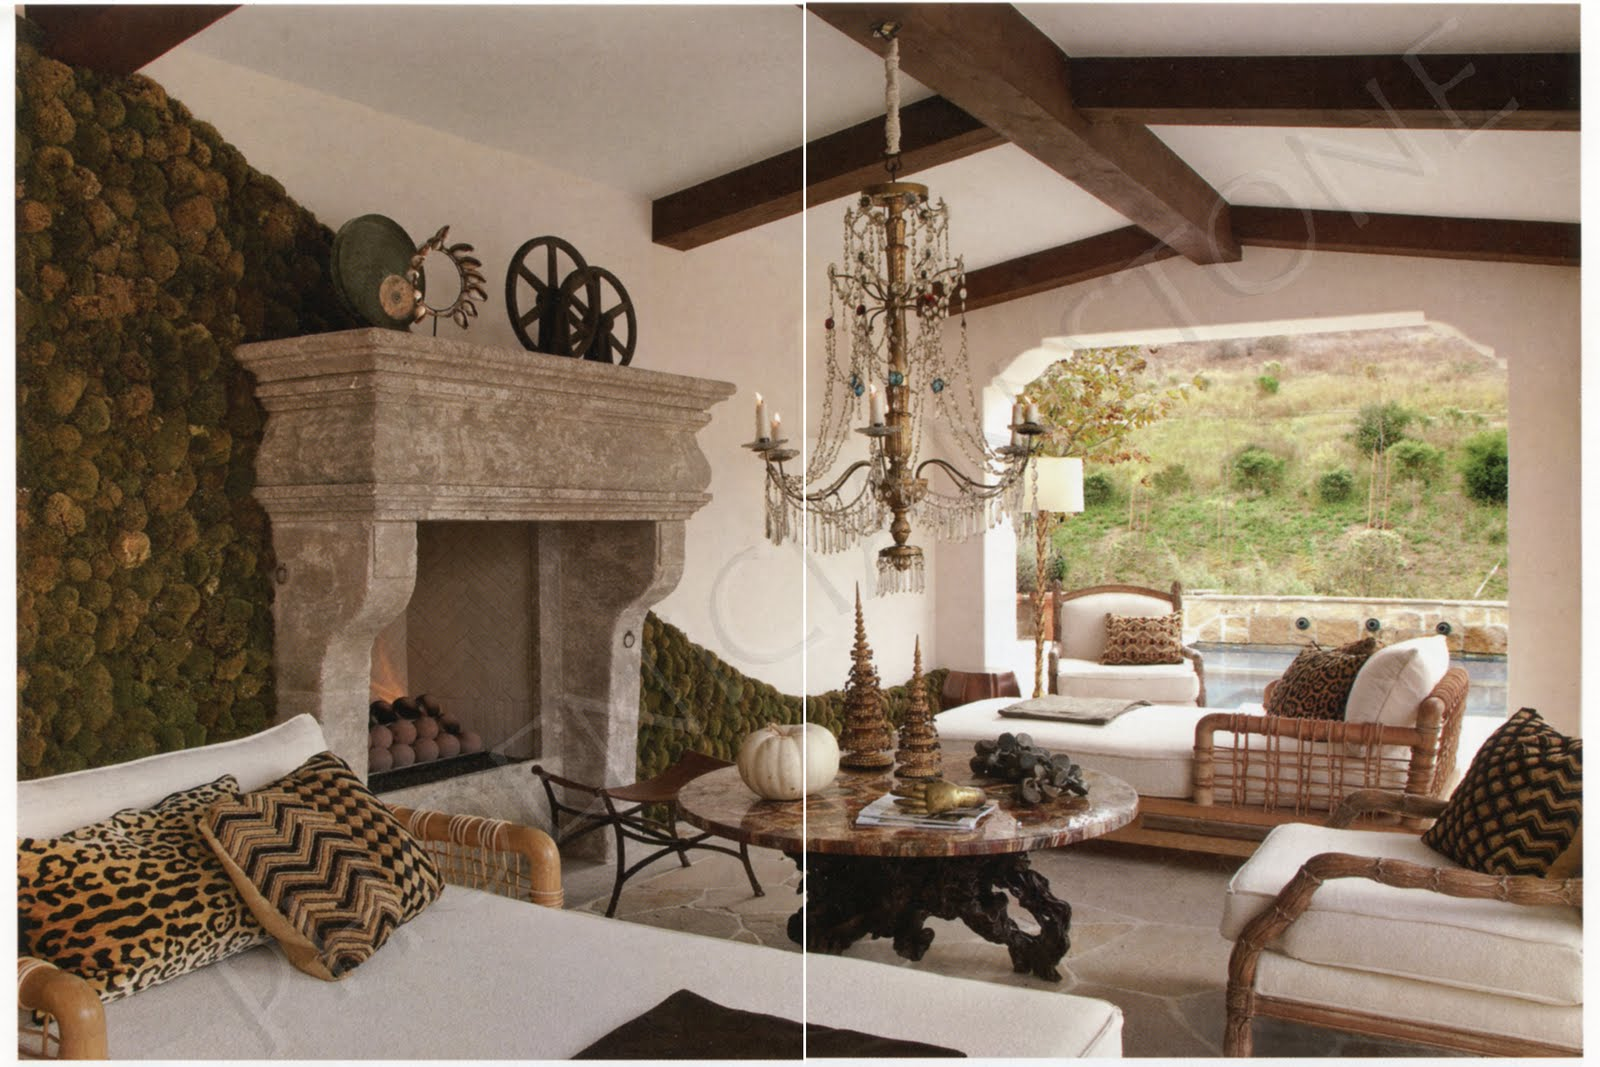 California Home Magazine The 2009 Philharmonic Showcase House Of The Year In Orange County California